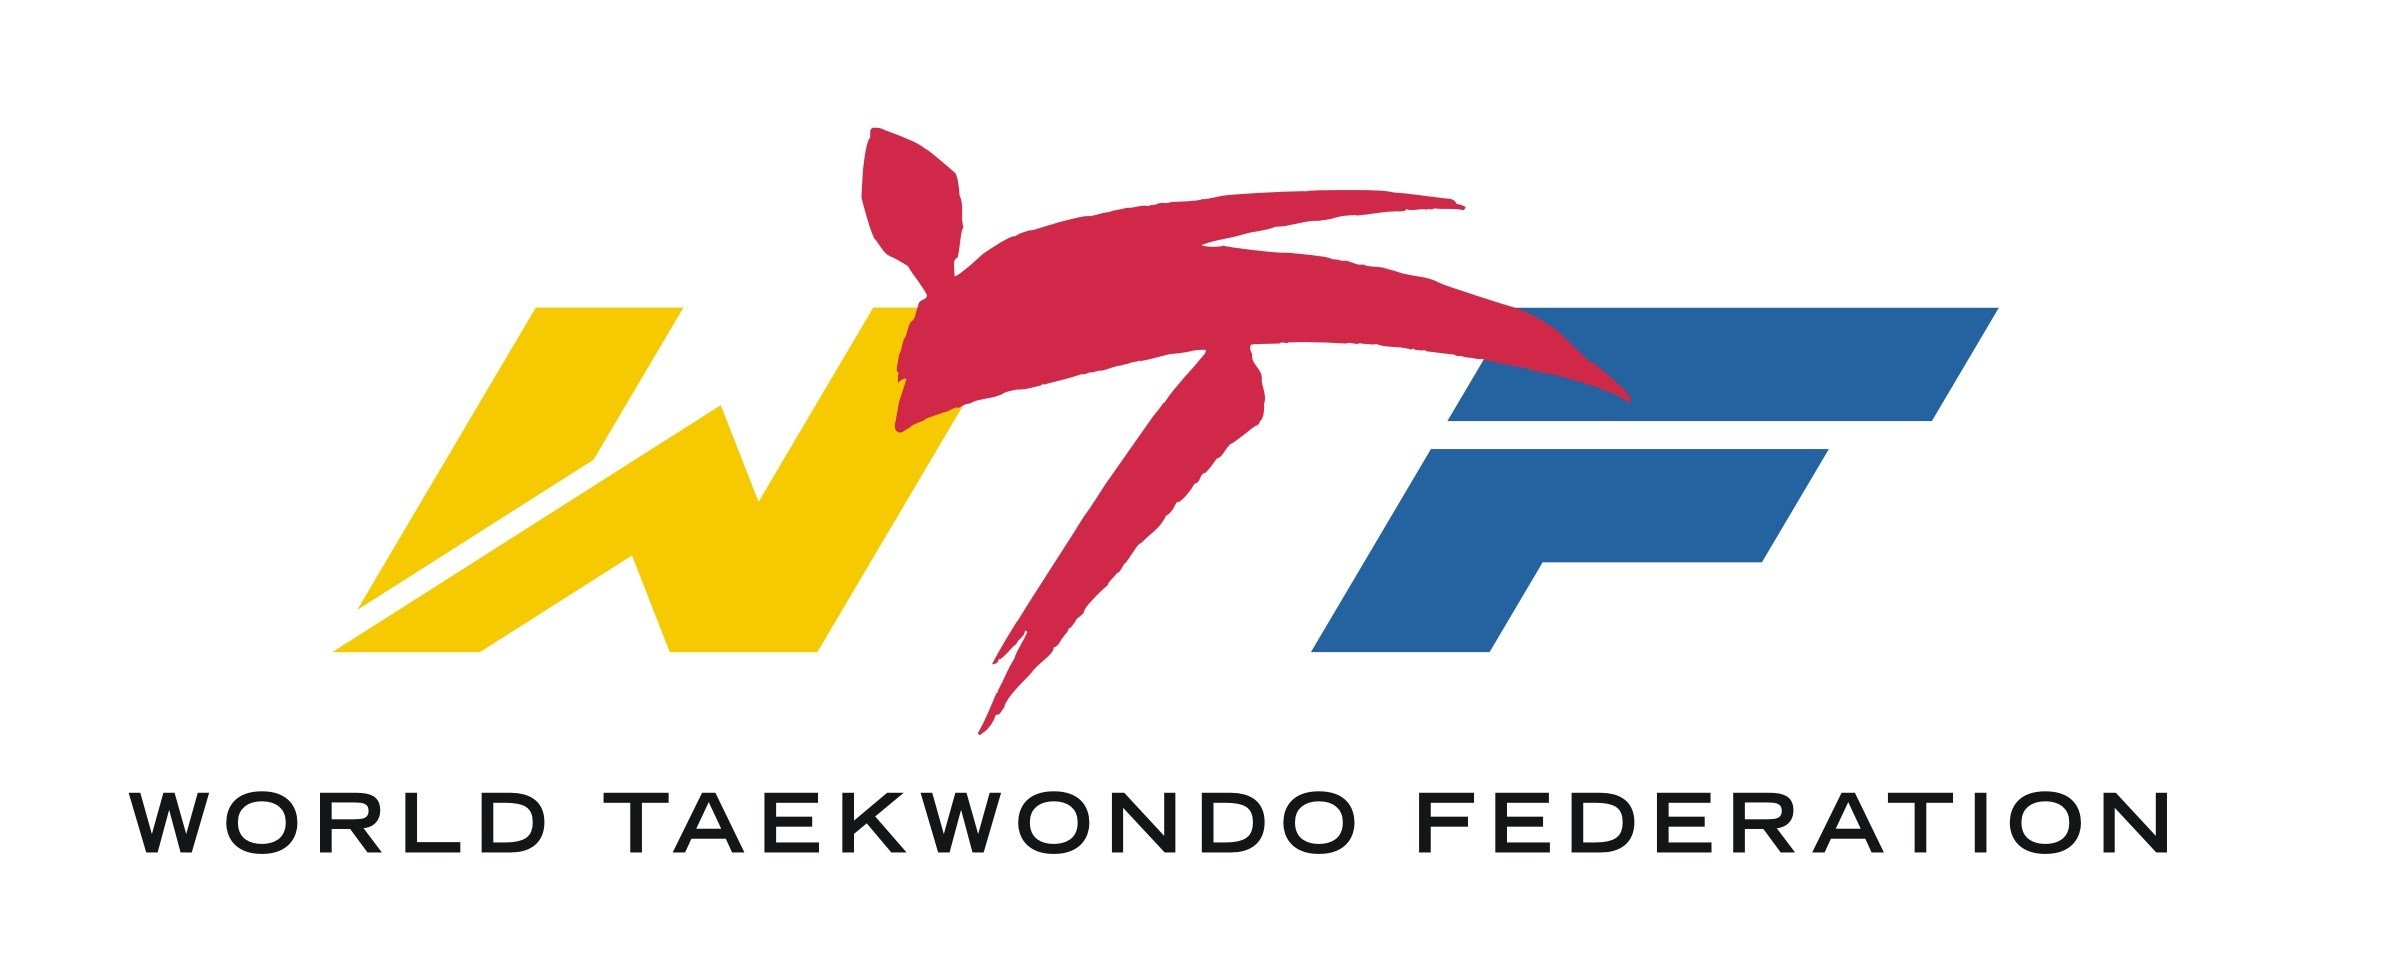 World Taekwondo Federation Named As A Full Member To The